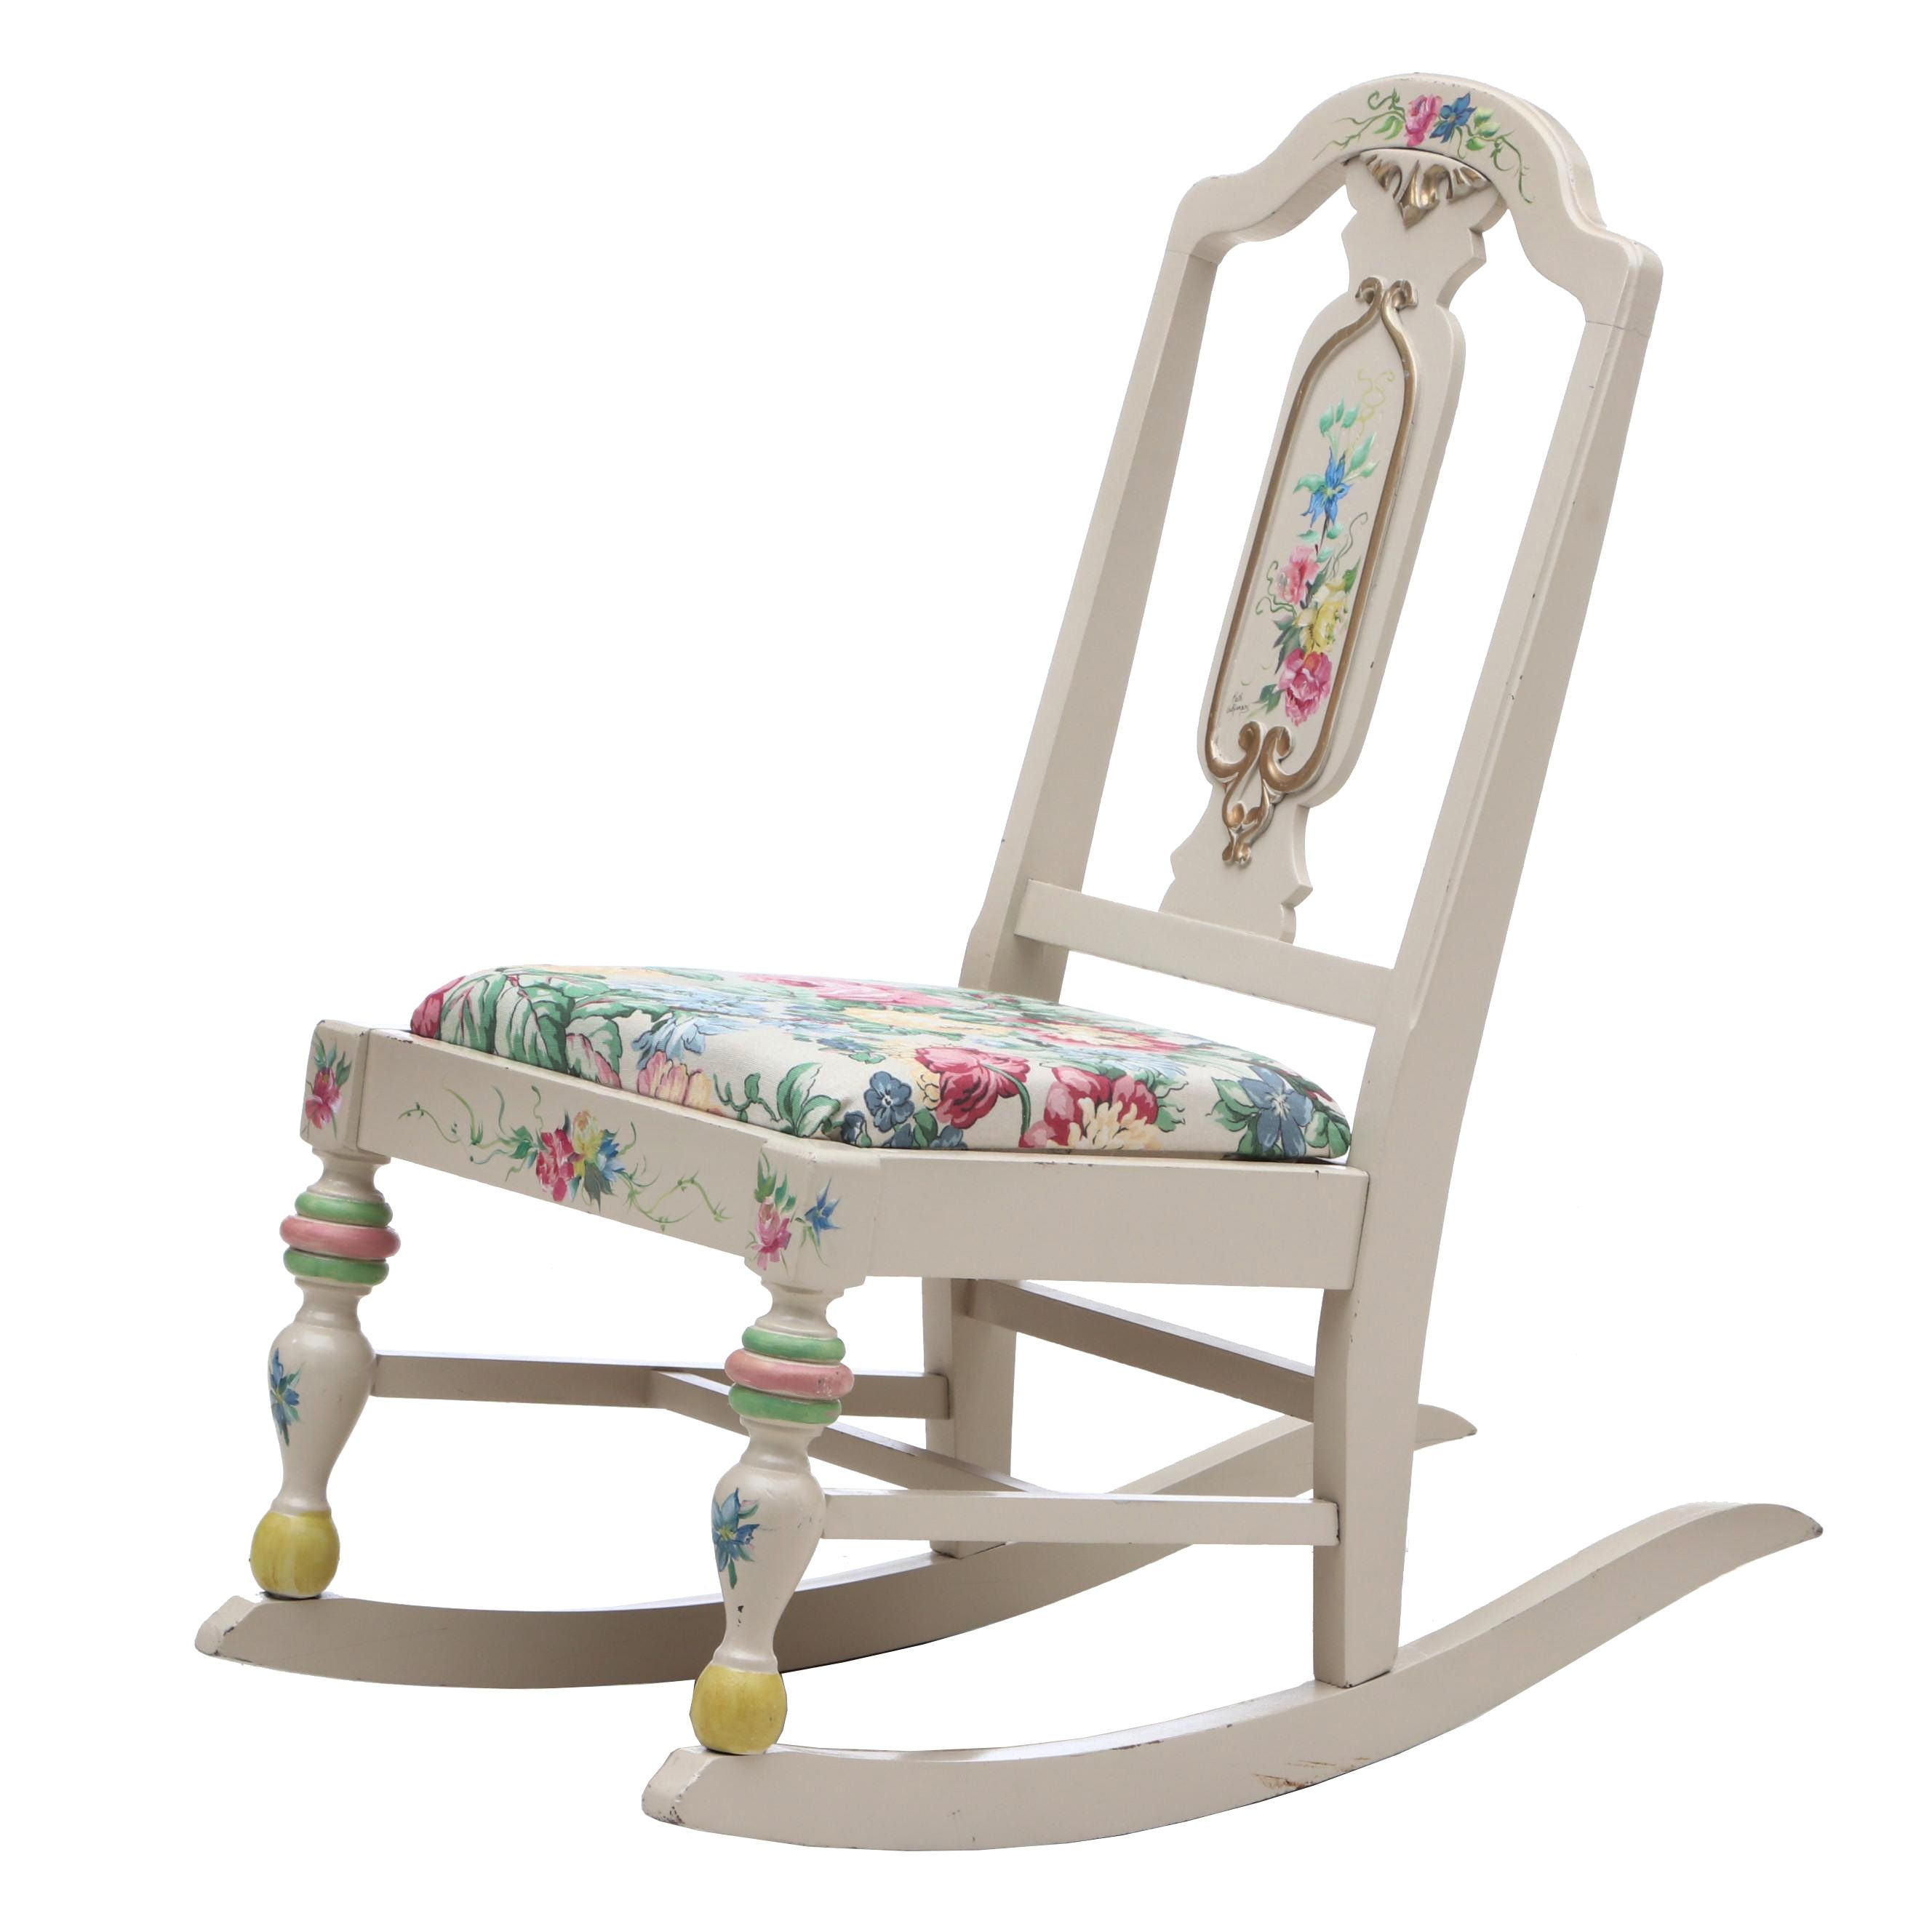 Hand-Painted Child's Rocker Embellished in Multiple Floral Colored Pattern